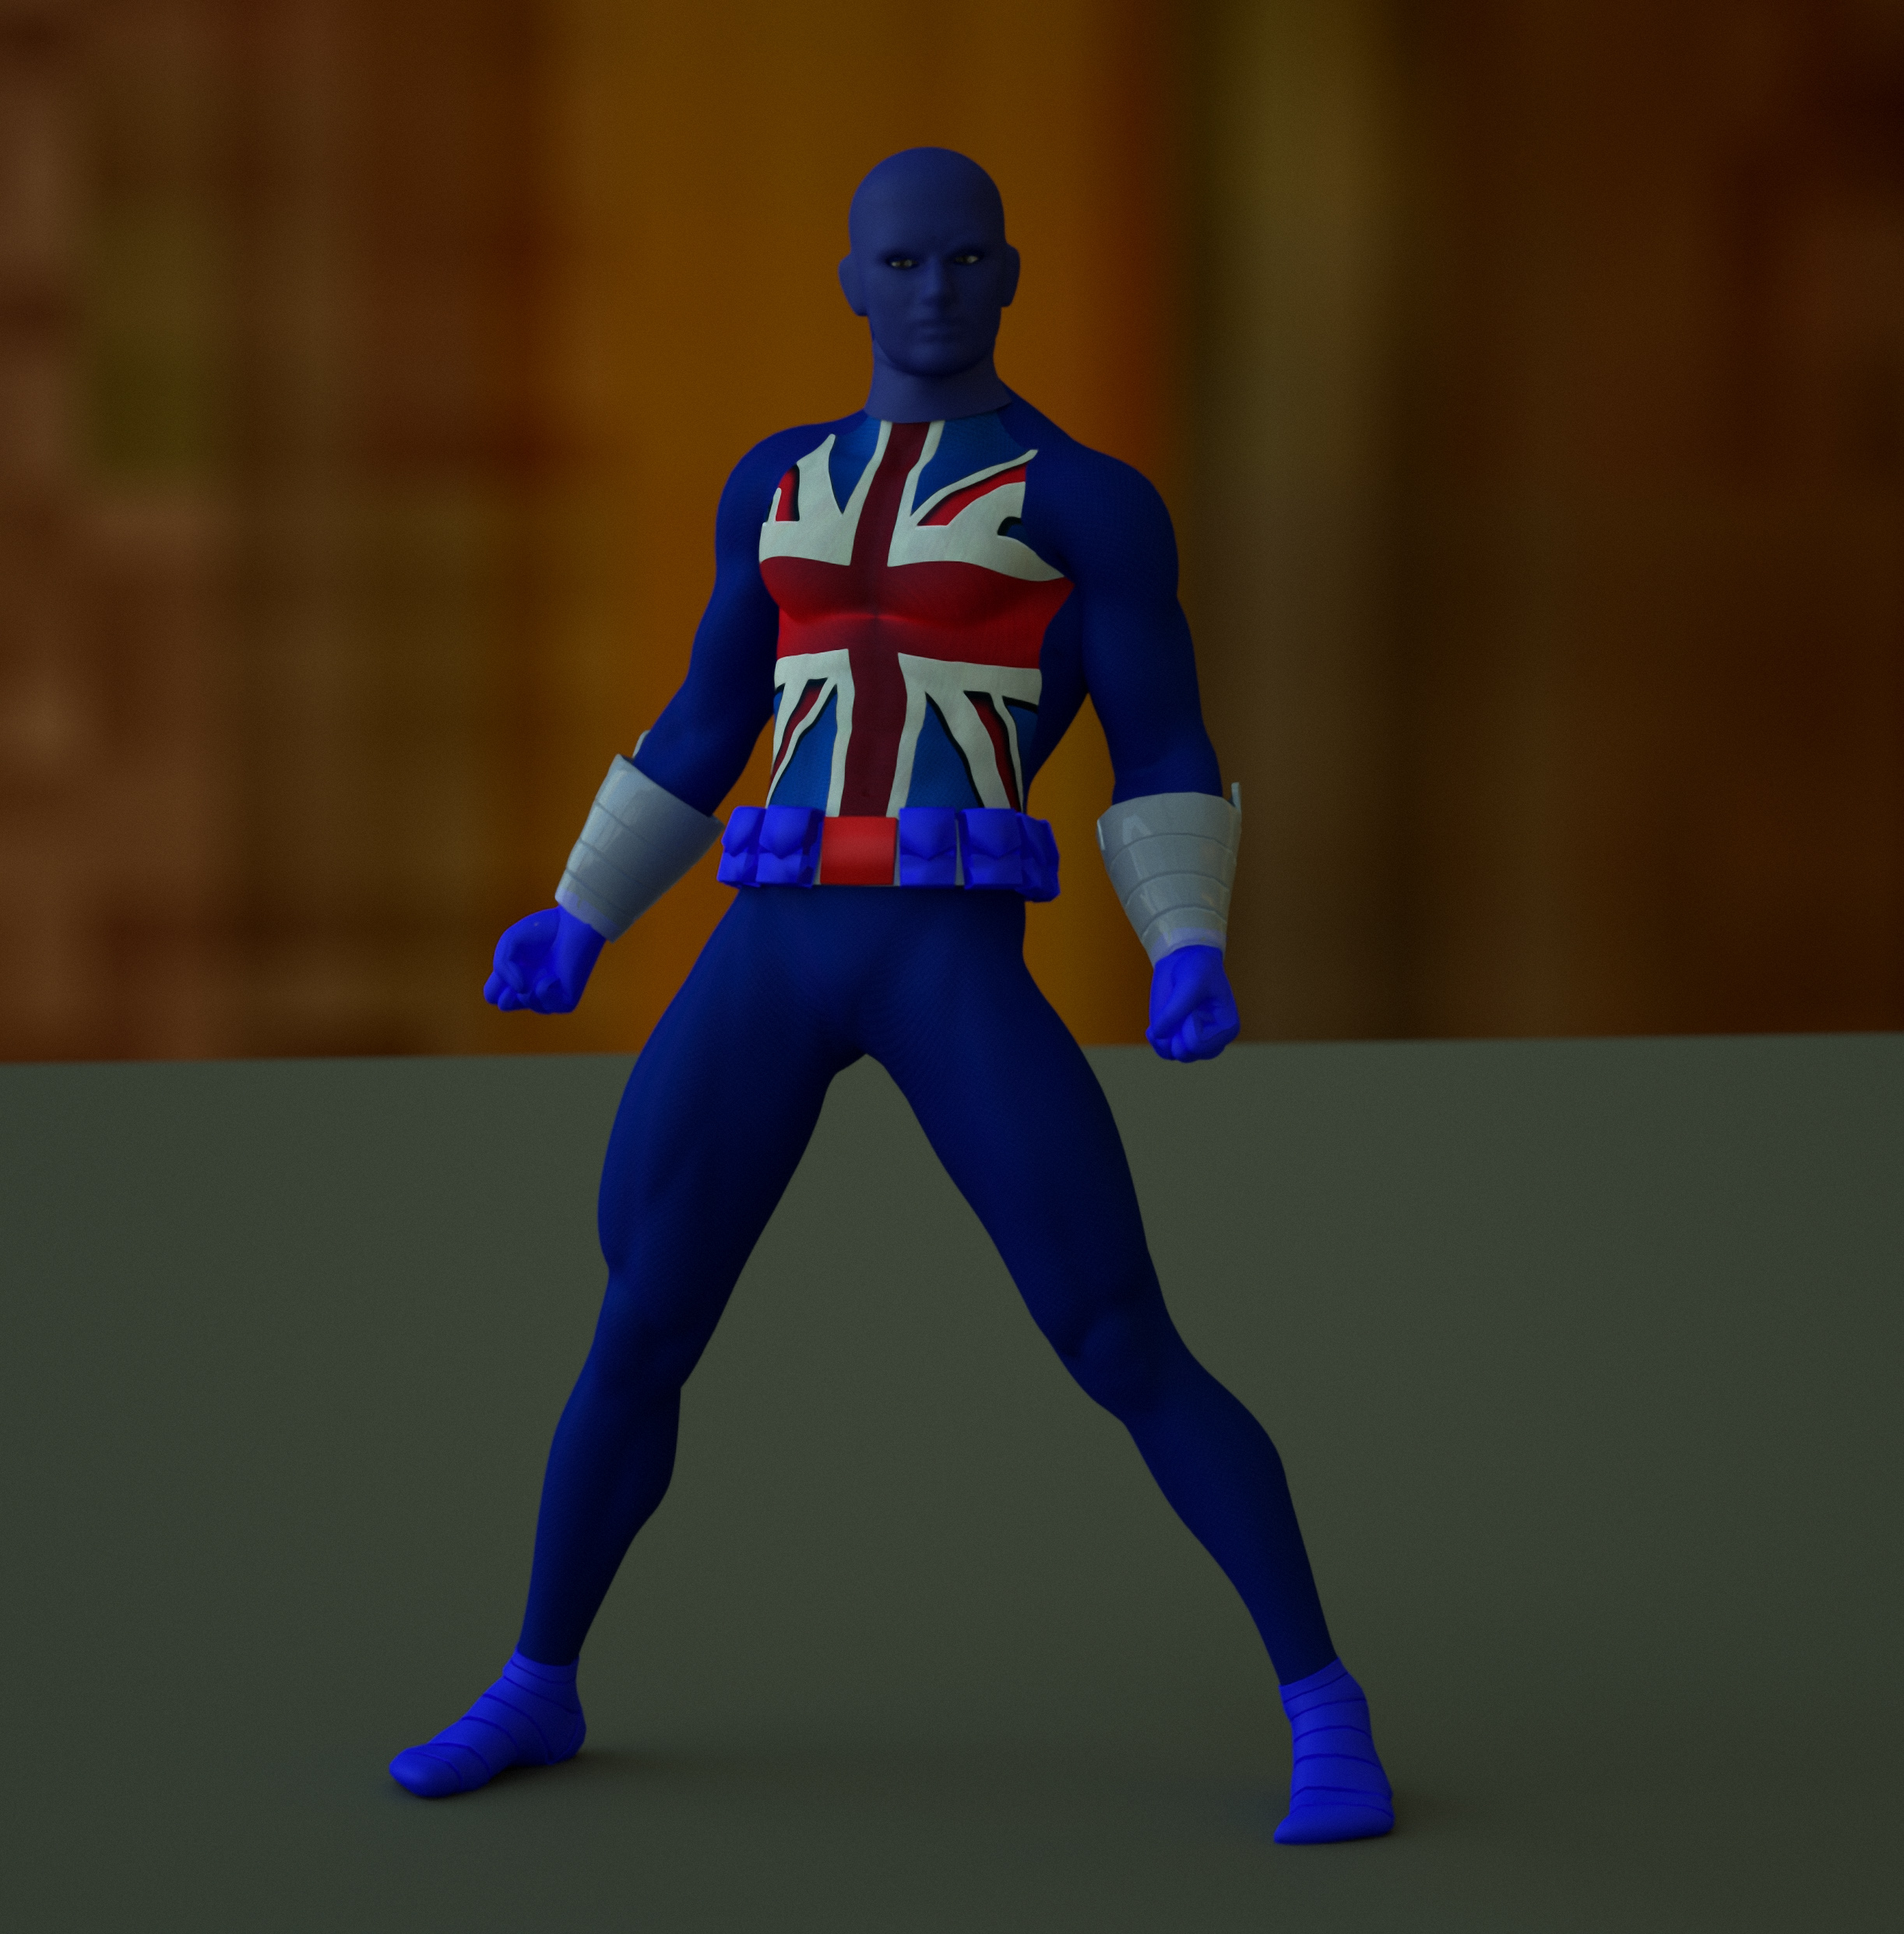 Union Jack second skin textures for M4